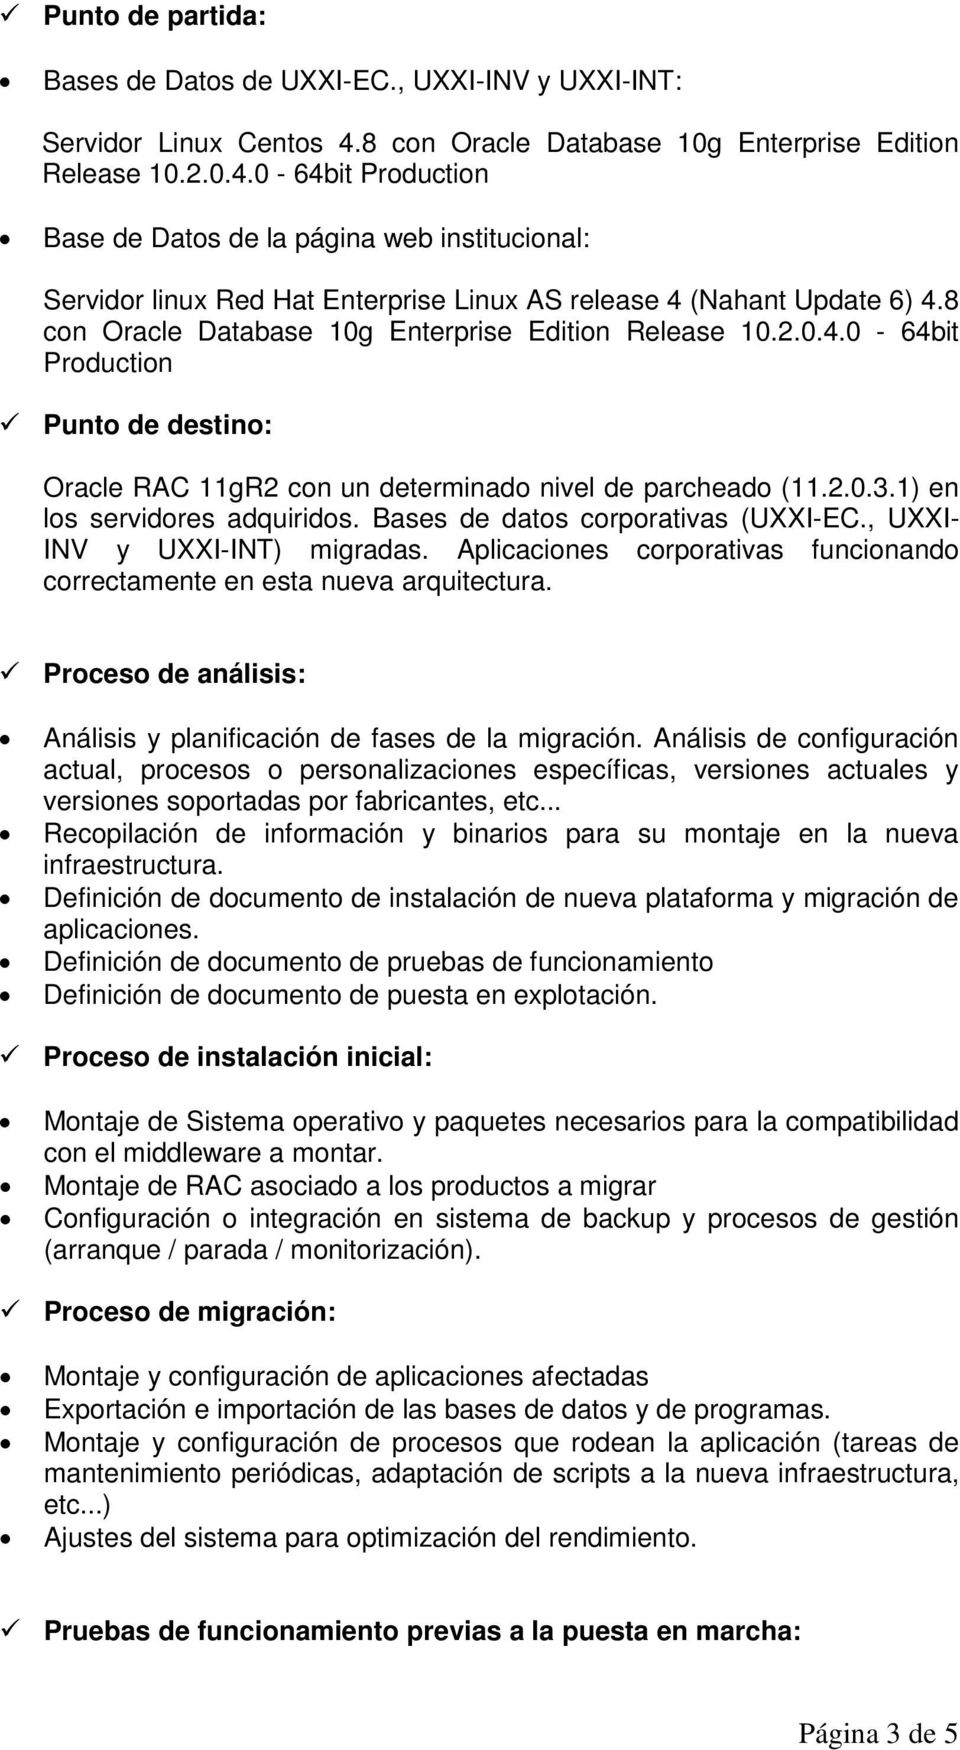 8 con Oracle Database 10g Enterprise Edition Release 10.2.0.4.0-64bit Production Punto de destino: Oracle RAC 11gR2 con un determinado nivel de parcheado (11.2.0.3.1) en los servidores adquiridos.